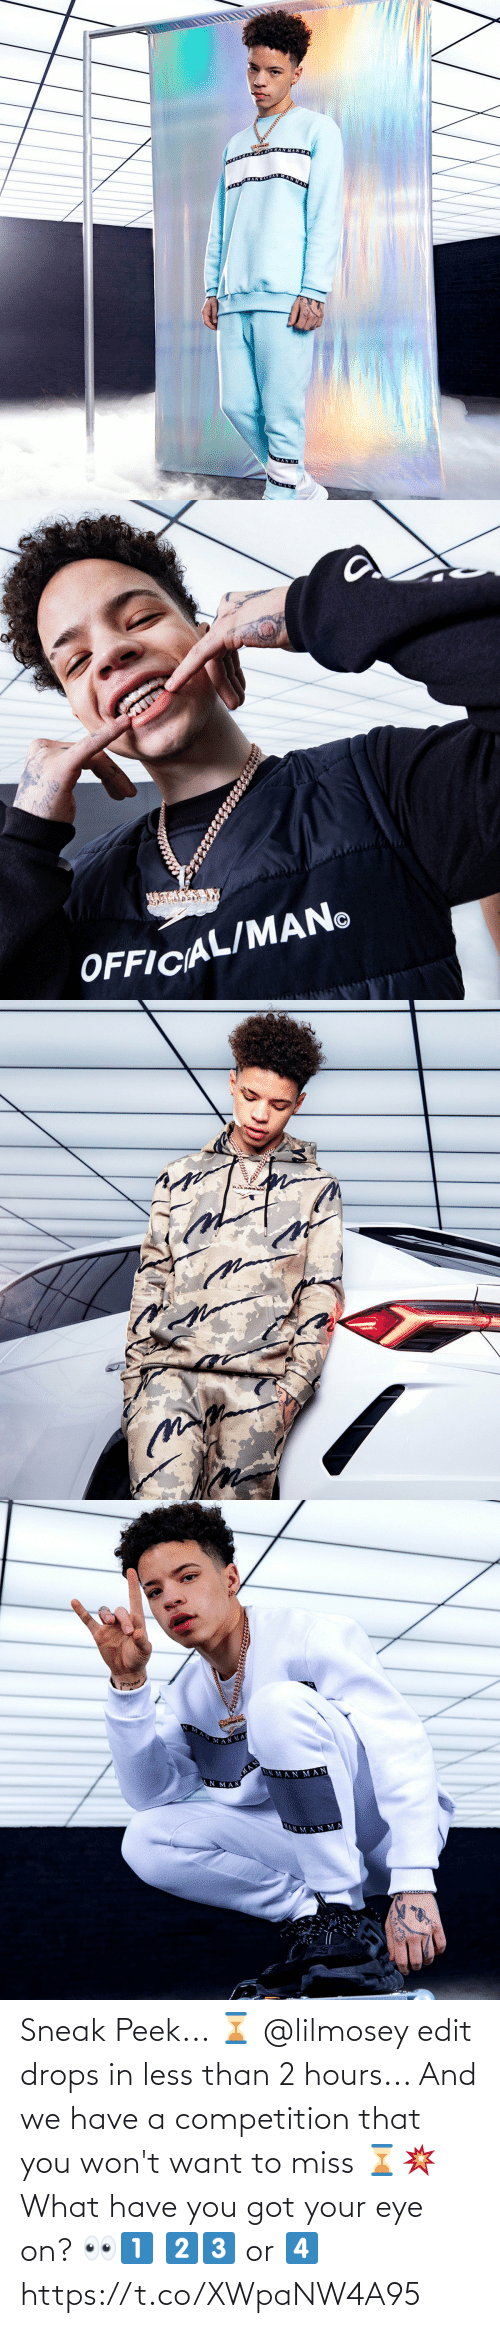 sneak peek: Sneak Peek... ⌛  @lilmosey edit drops in less than 2 hours... And we have a competition that you won't want to miss ⌛💥  What have you got your eye on? 👀1️⃣ 2️⃣3️⃣ or 4️⃣ https://t.co/XWpaNW4A95